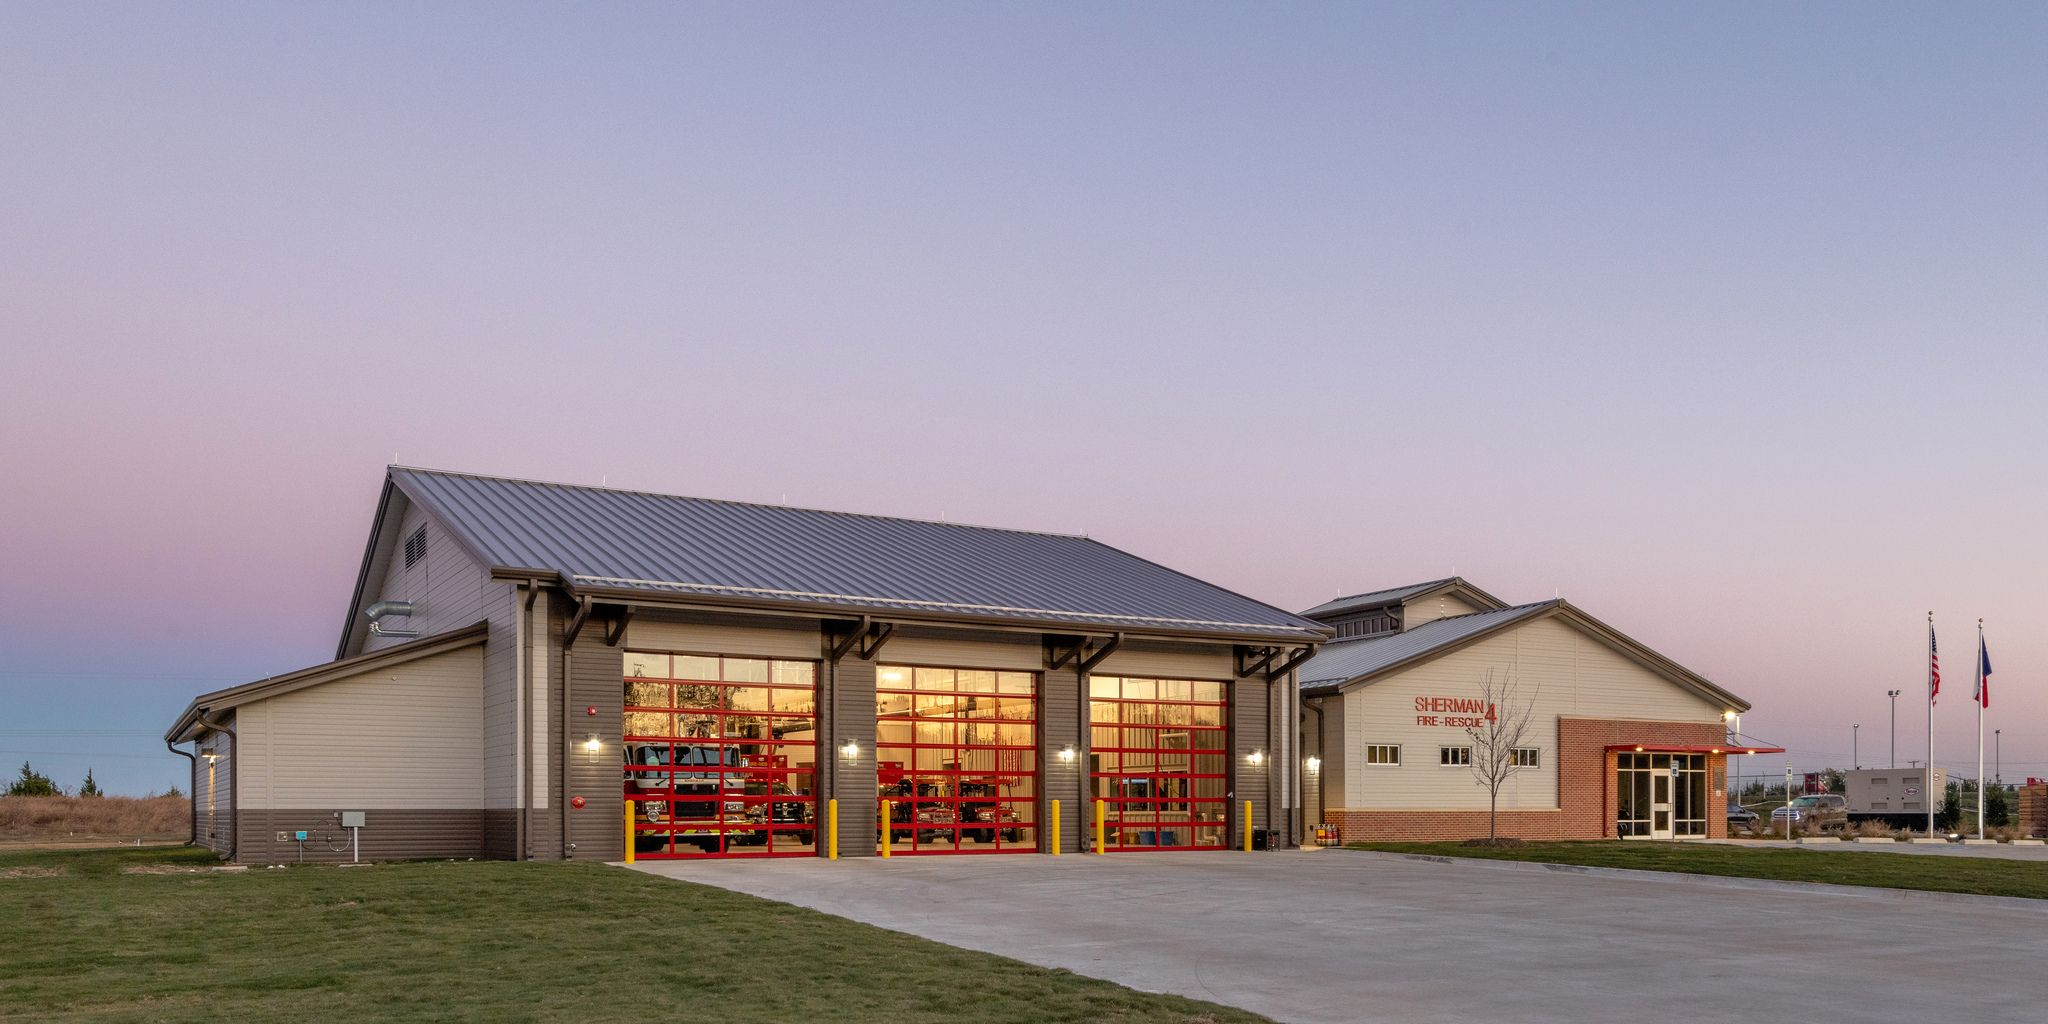 Sherman Fire Station